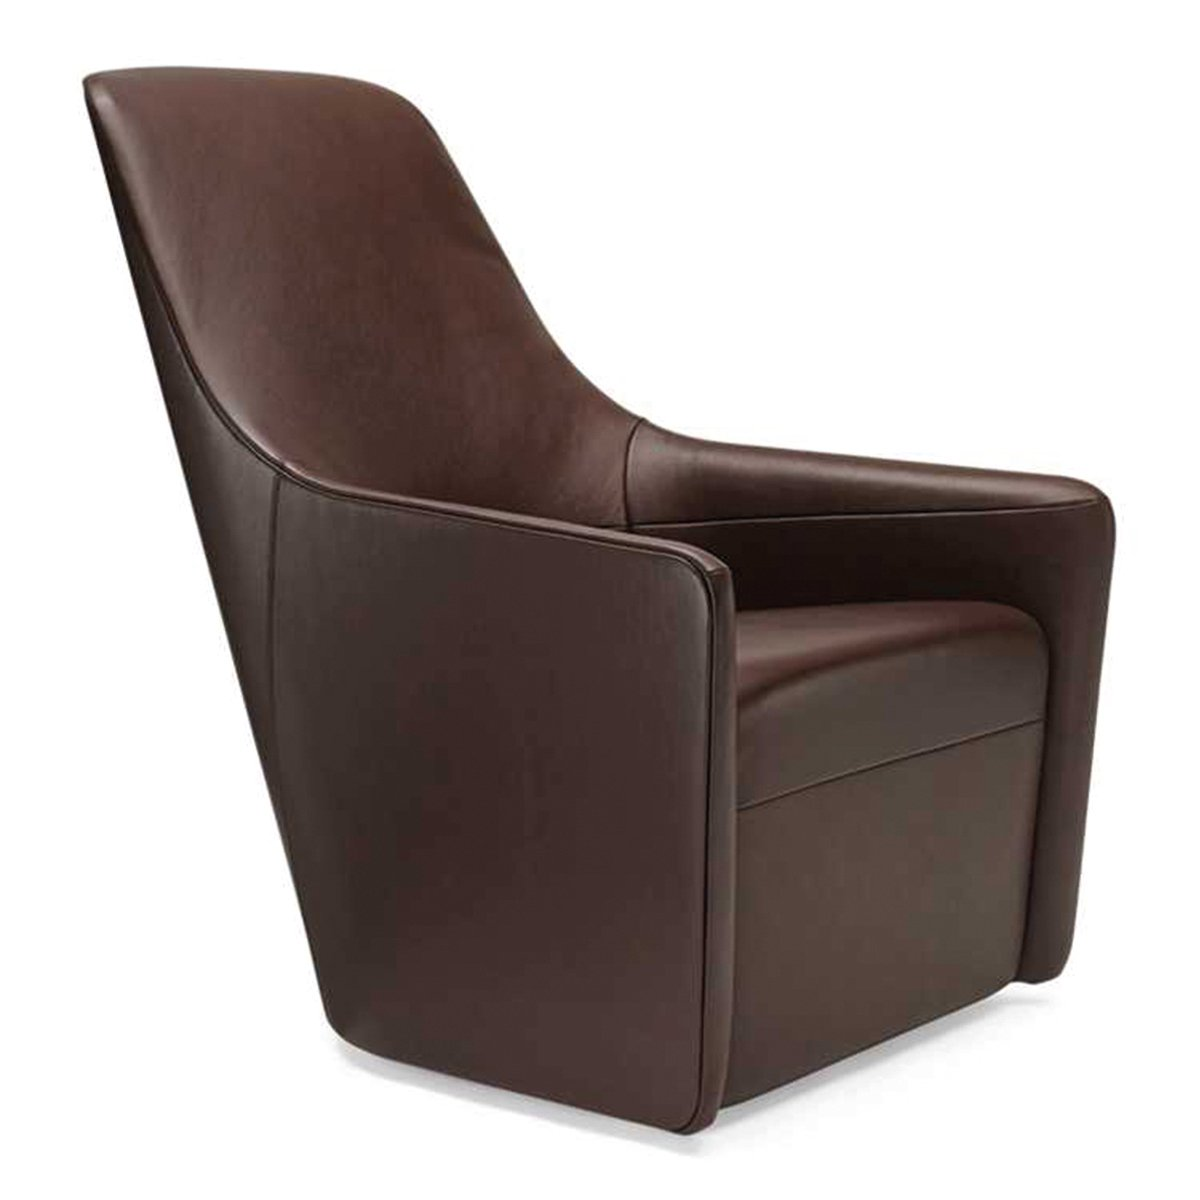 Walter Knoll Foster 520 Fauteuil